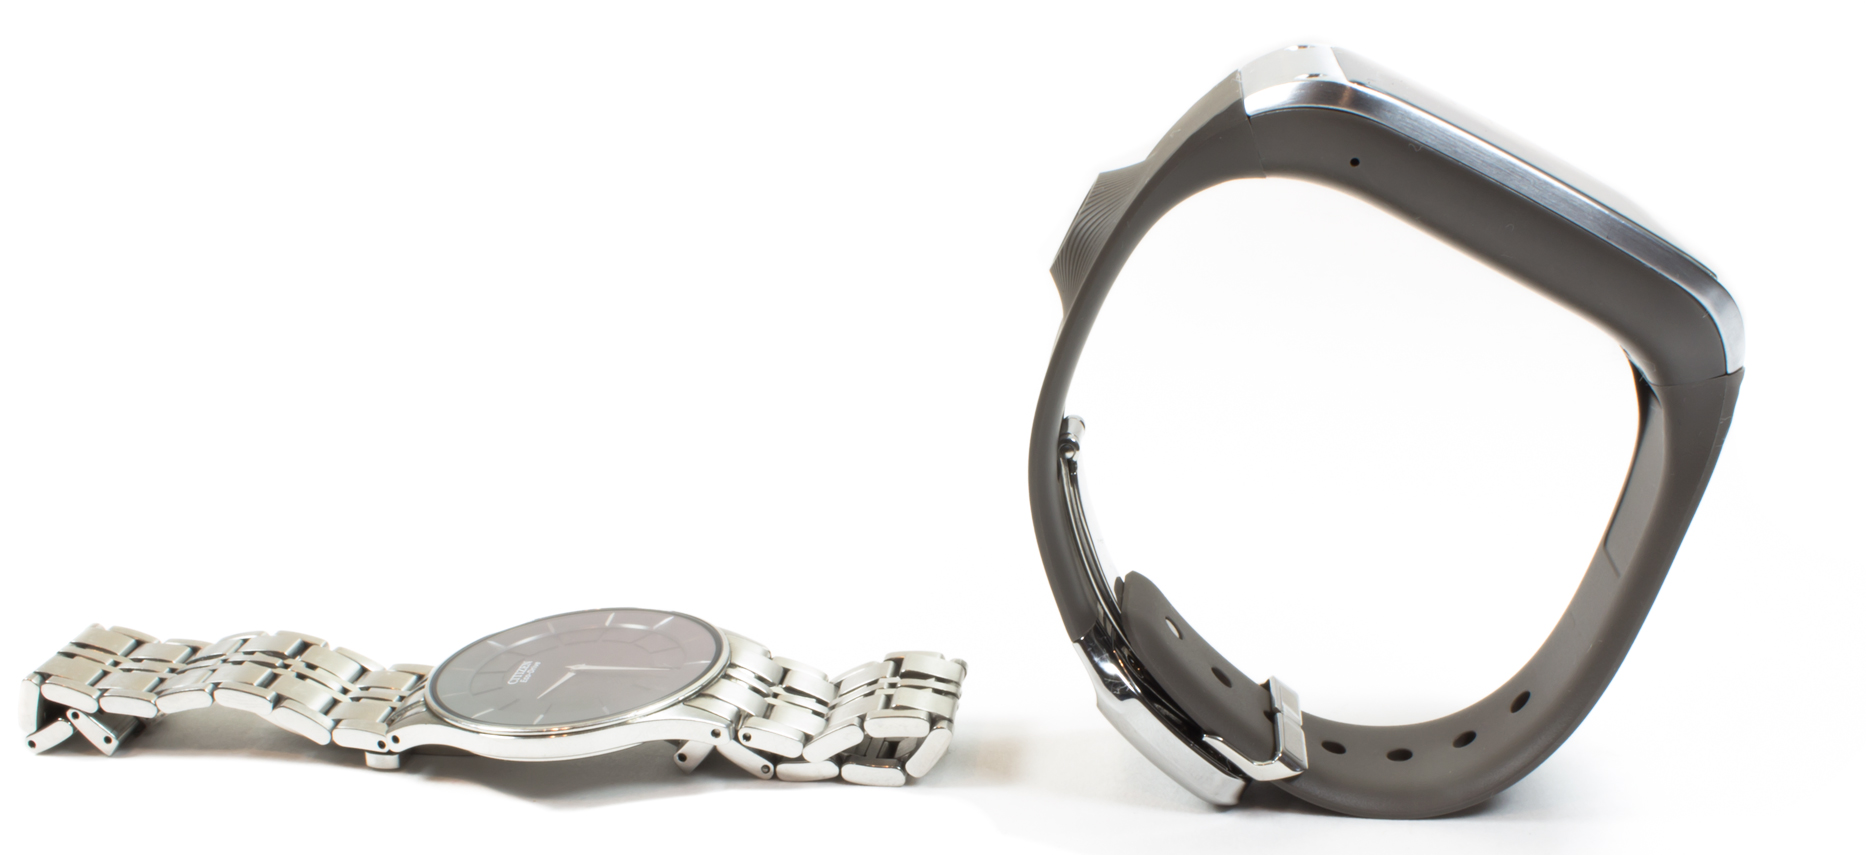 The stiff, supportive band of the Galaxy Gear stops it from resting on a wrist like a normal watch.